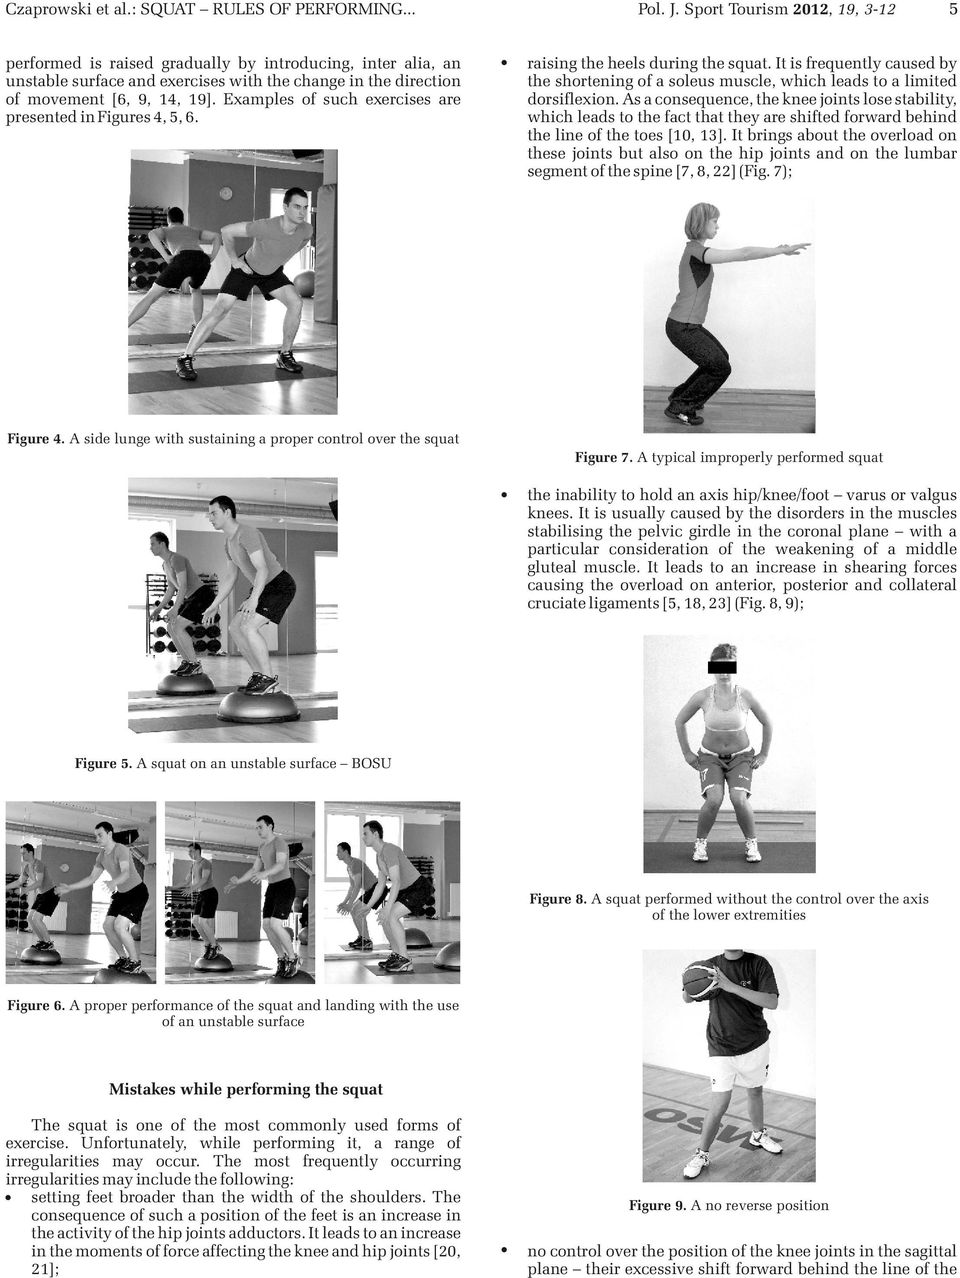 Examples of such exercises are presented in Figures 4, 5, 6. raising the heels during the squat. It is frequently caused by the shortening of a soleus muscle, which leads to a limited dorsiflexion.